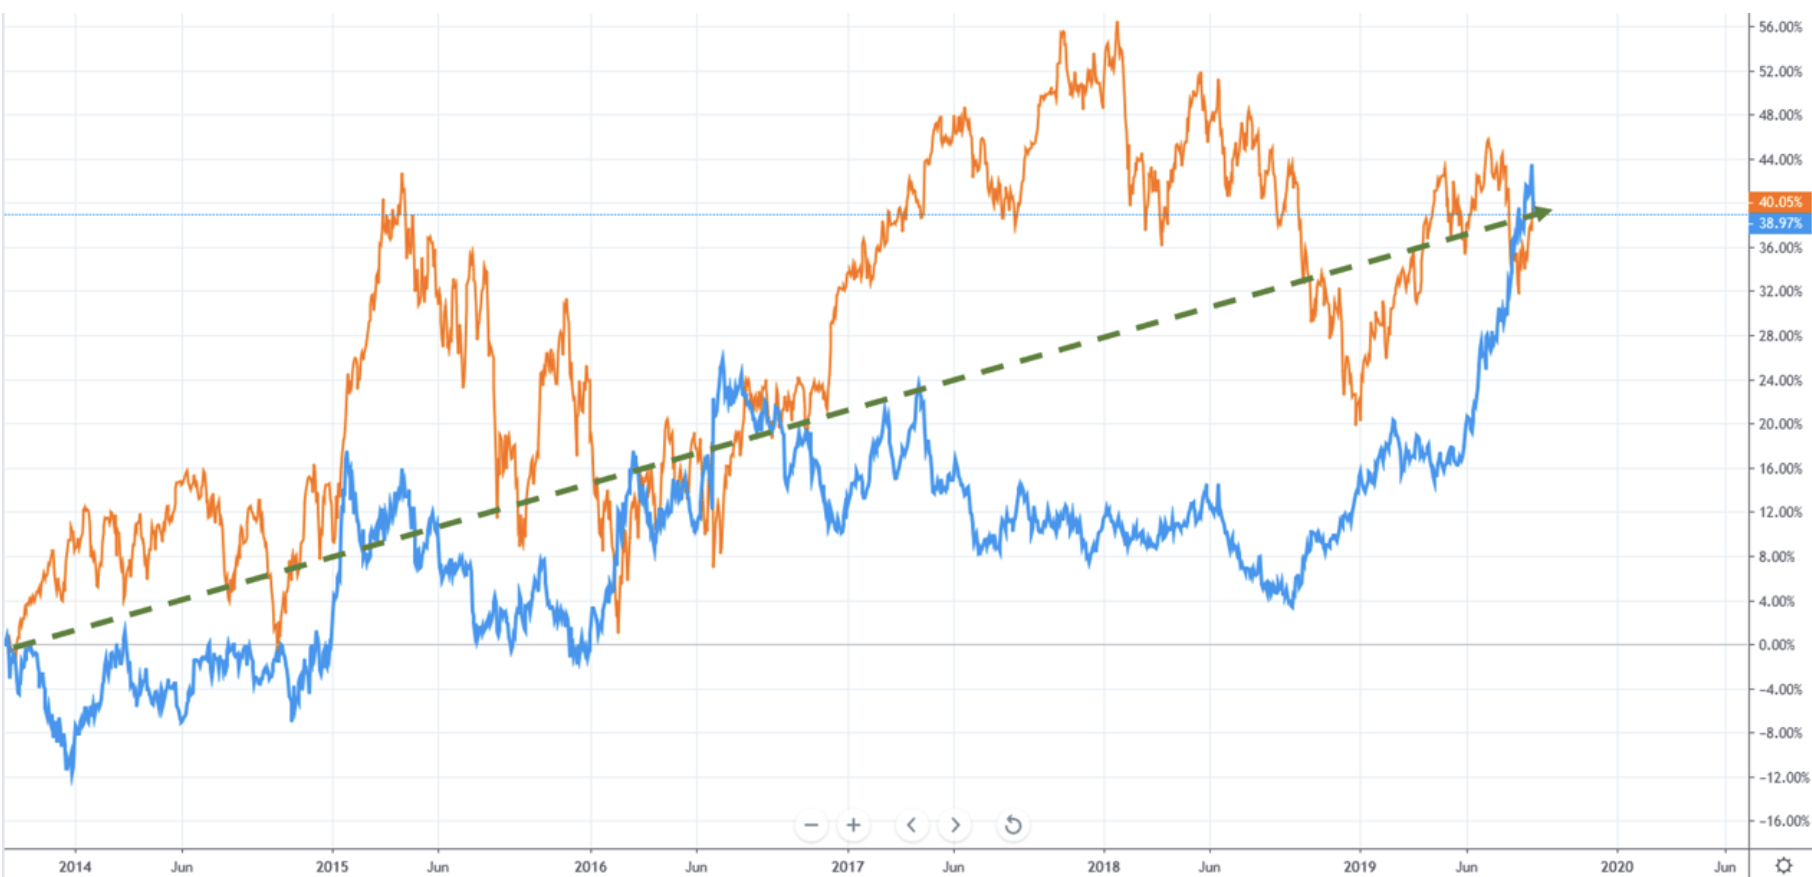 Anlagestrategie - Dax vs Gold